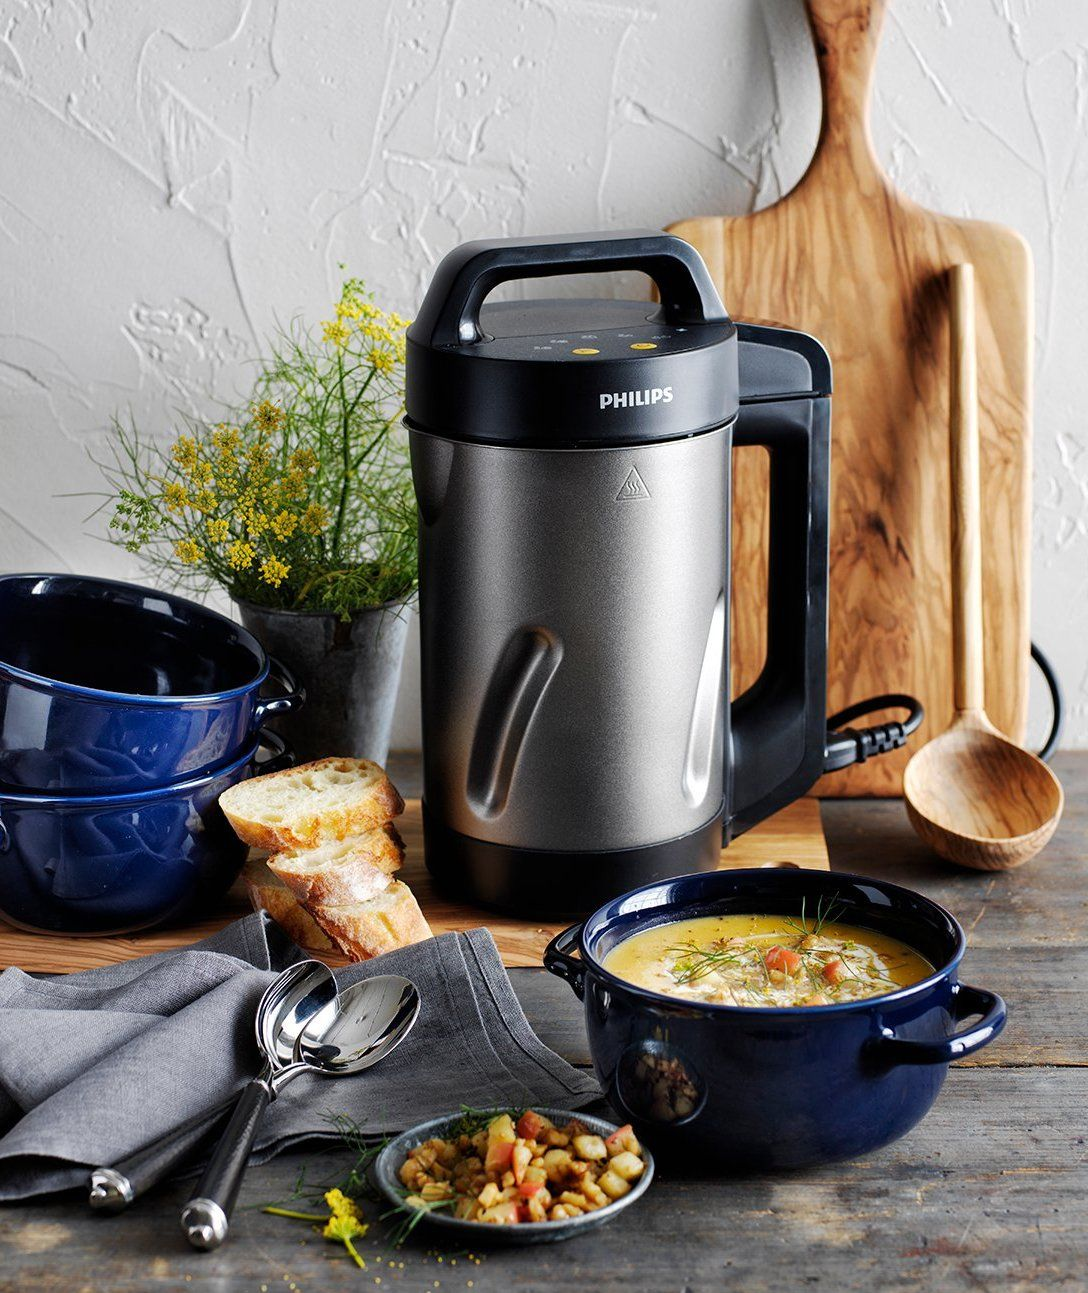 Philips Soup Maker. Countertop, portable and doubles as a ...